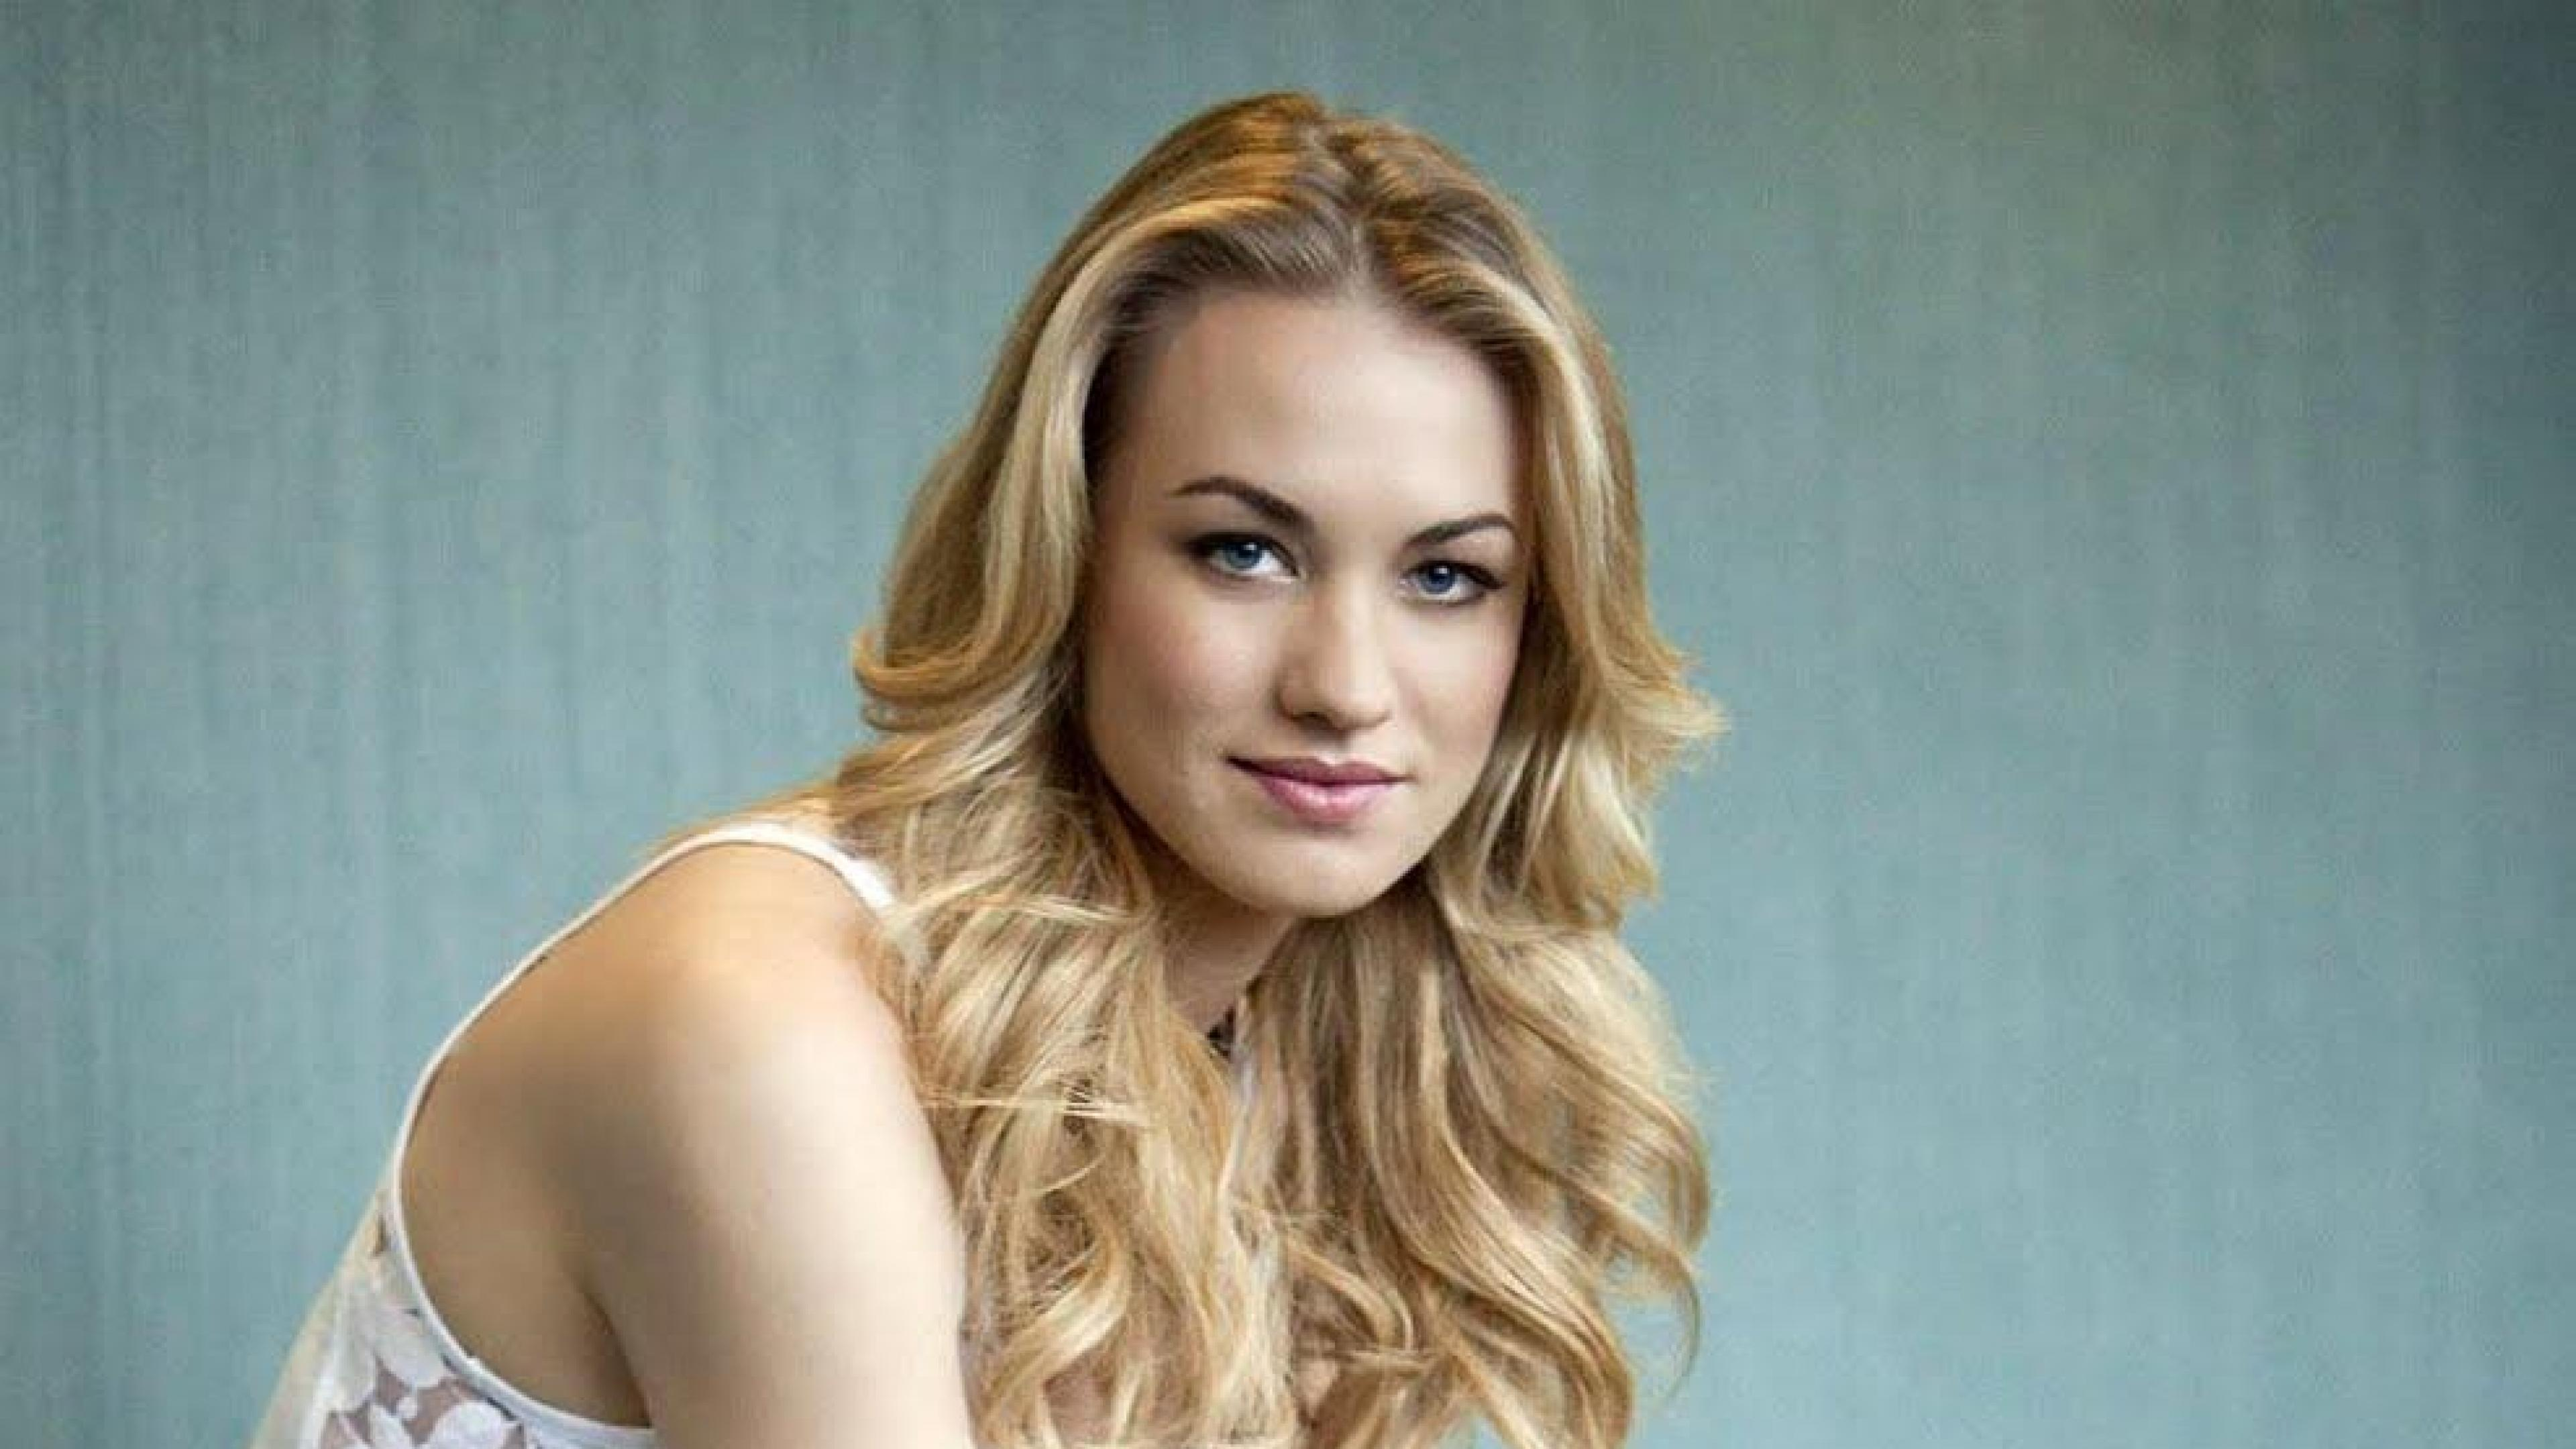 Yvonne strahovski Women HD Wallpapers Desktop Backgrounds 3840x2160